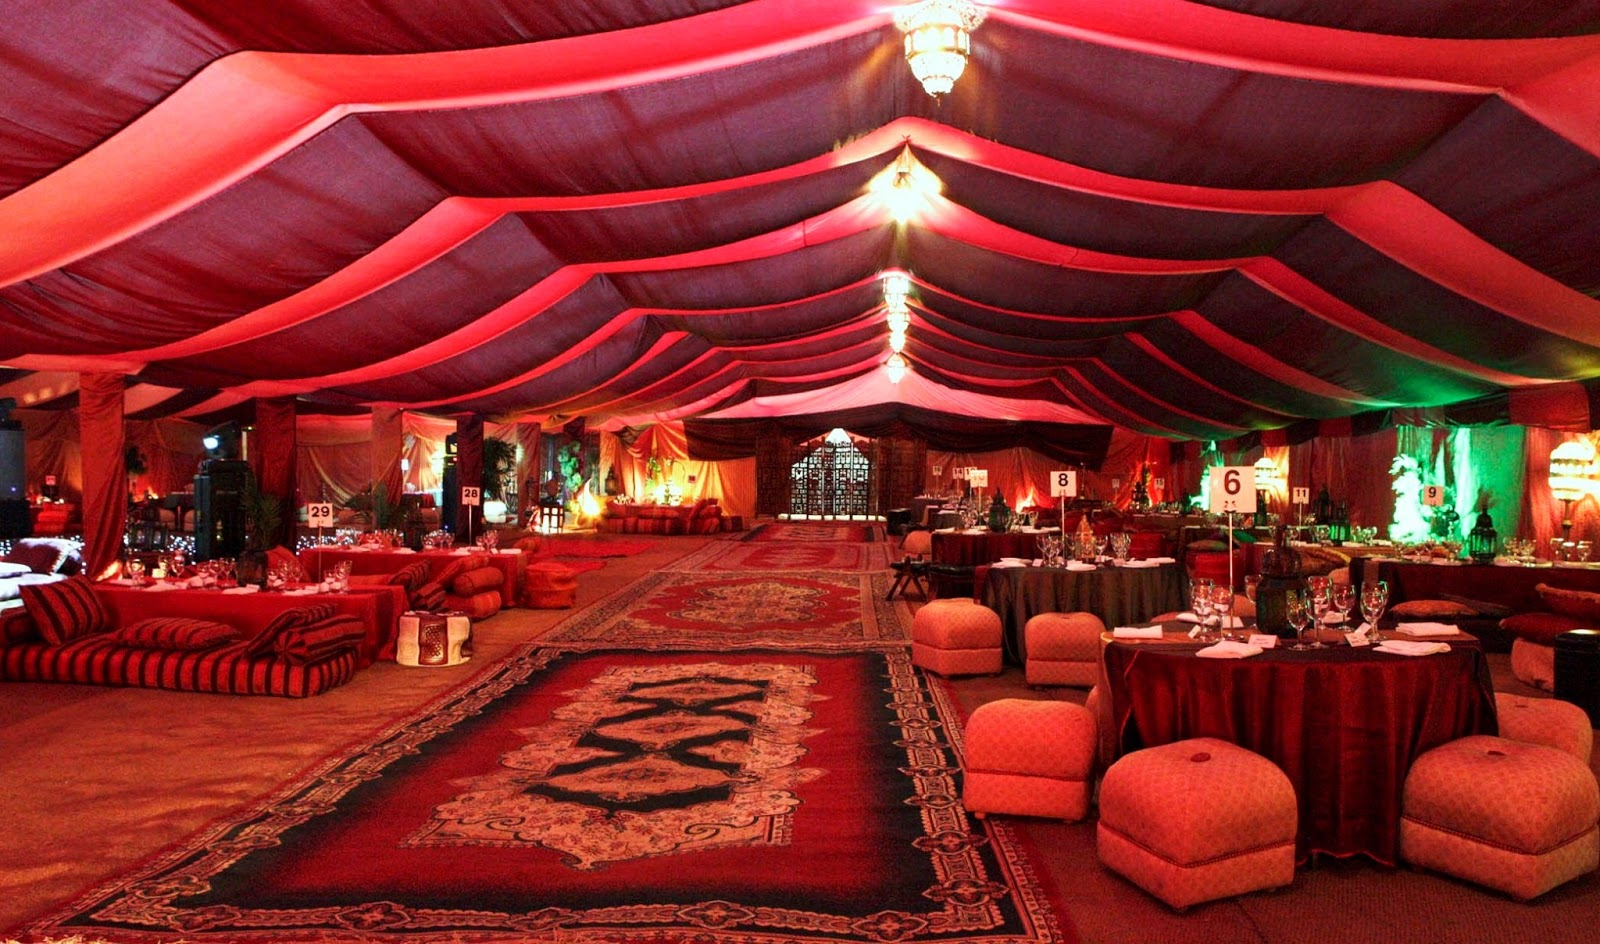 About marriage marriage decoration photos 2013 marriage for Arabian tent decoration